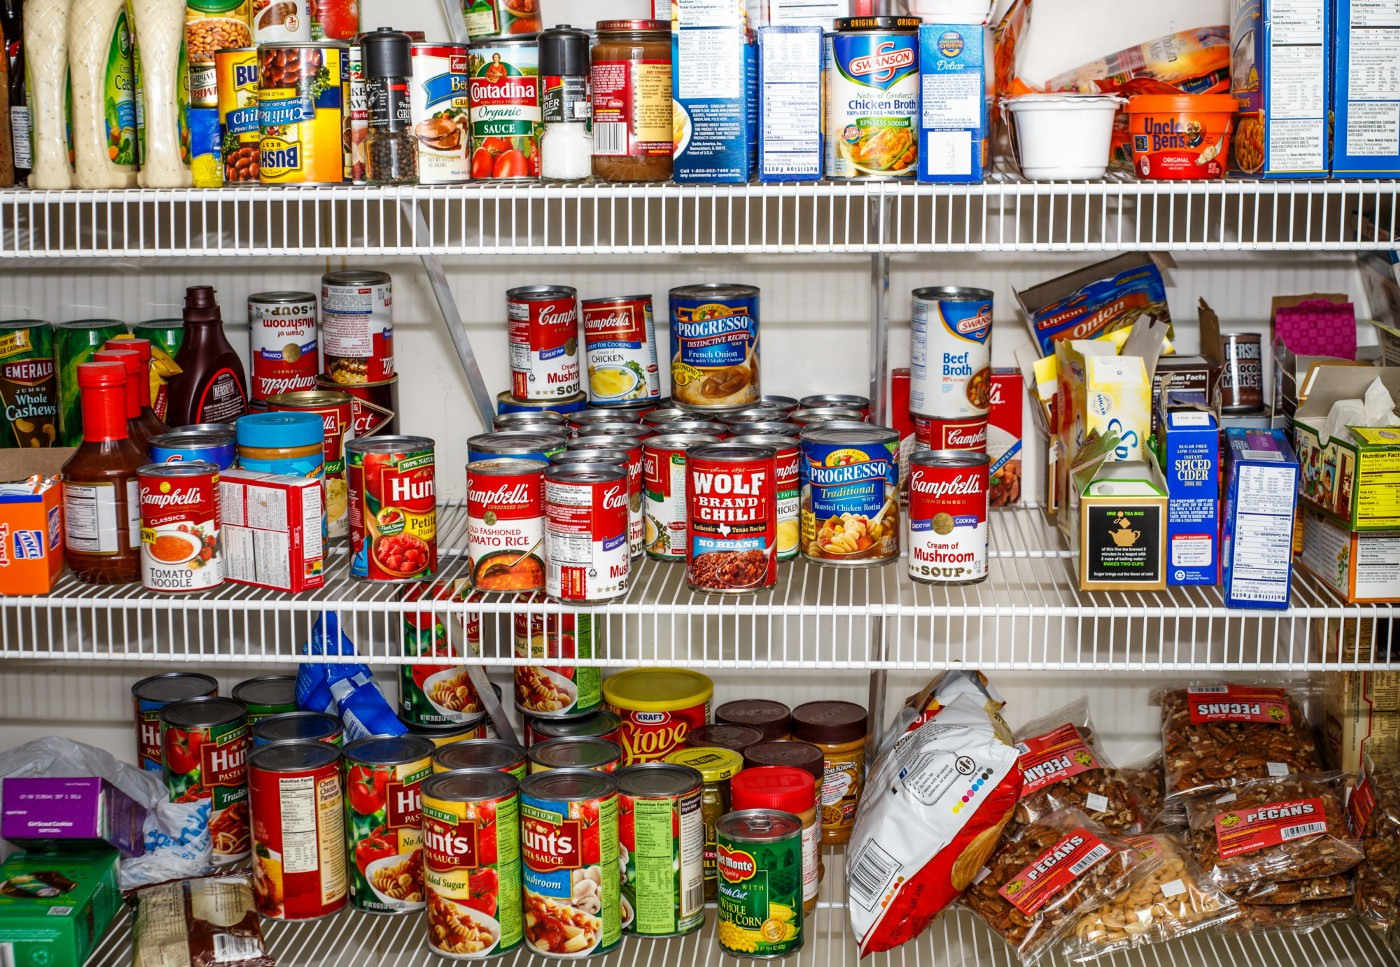 Stock Image of a Pantry by Darryl Brooks